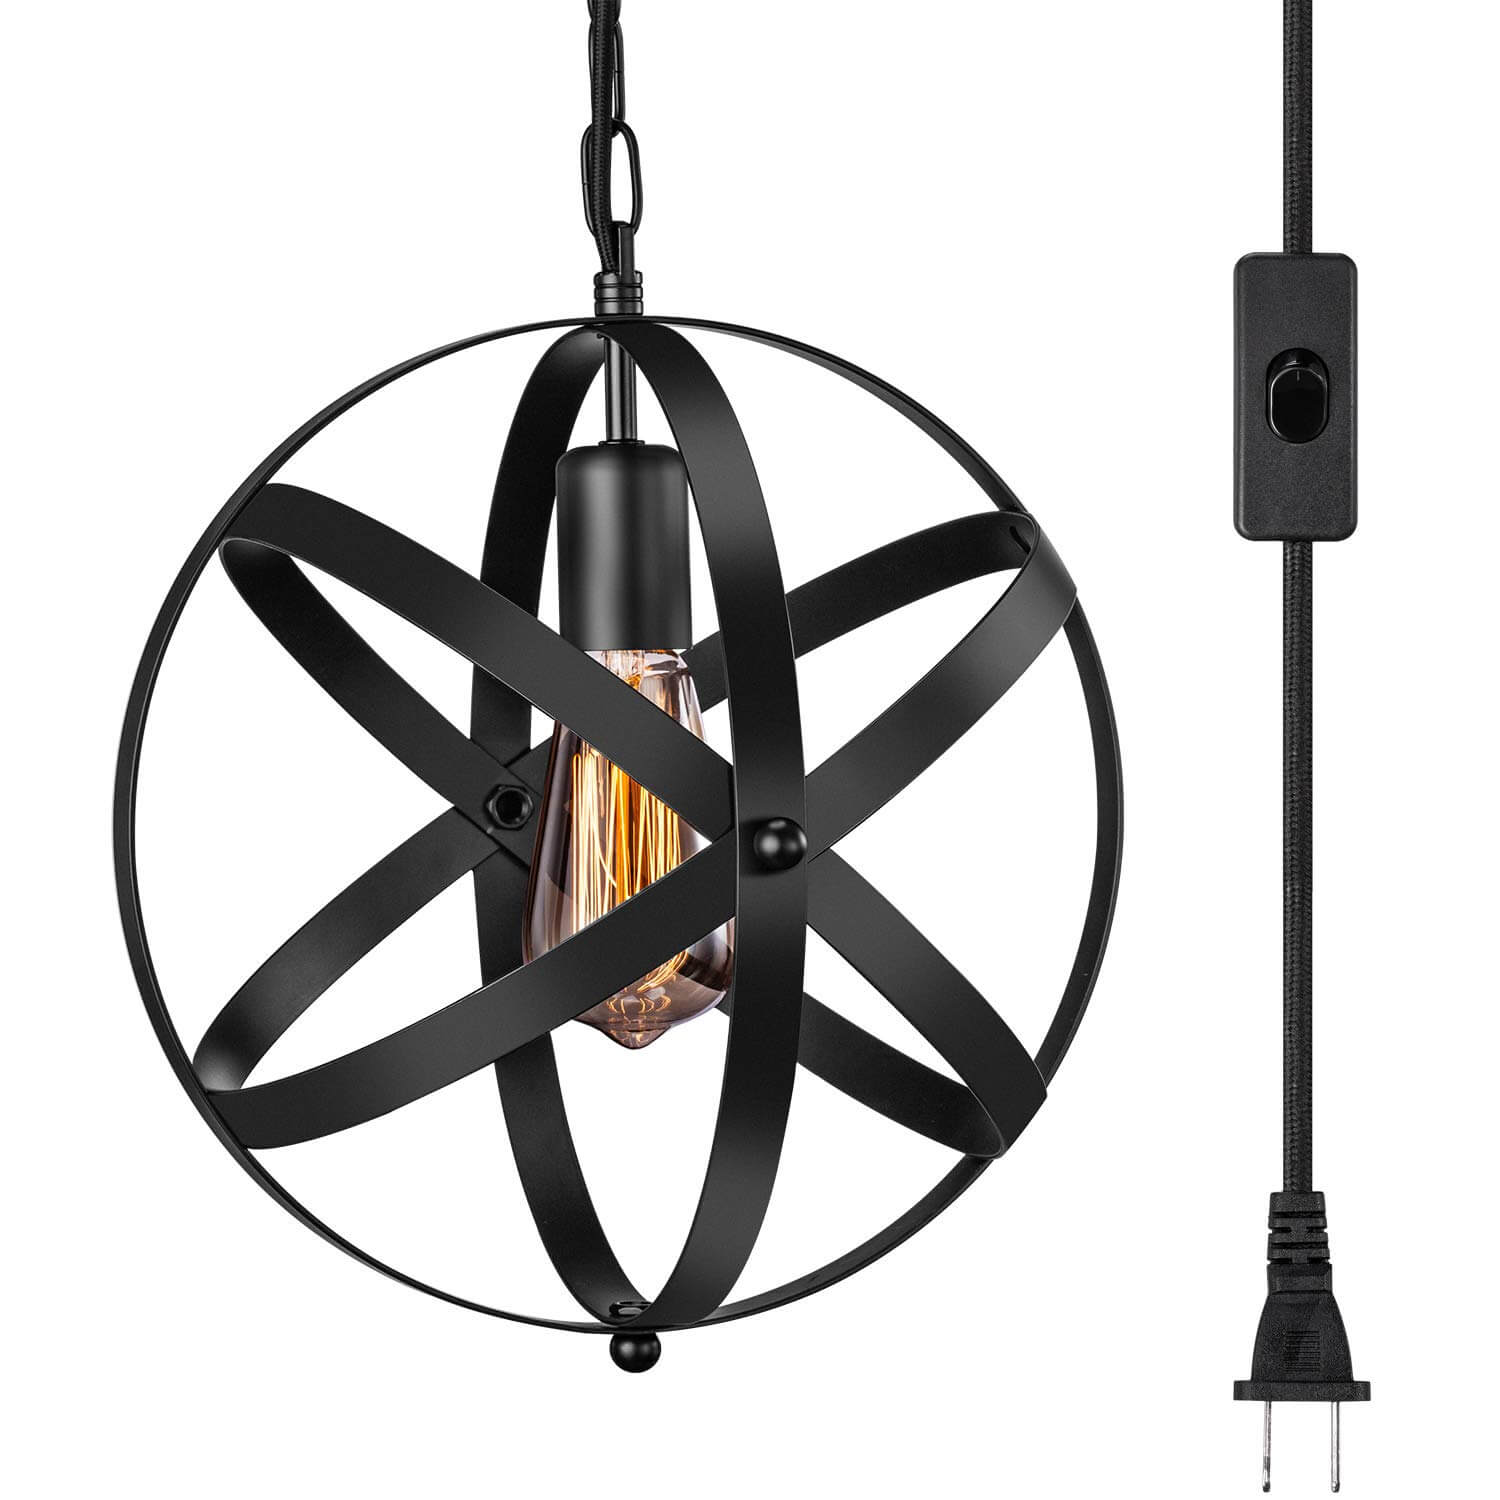 Industrial Plug in Pendant Light with 14.8' Hanging Cord and ON/OFF Switch | Amazon